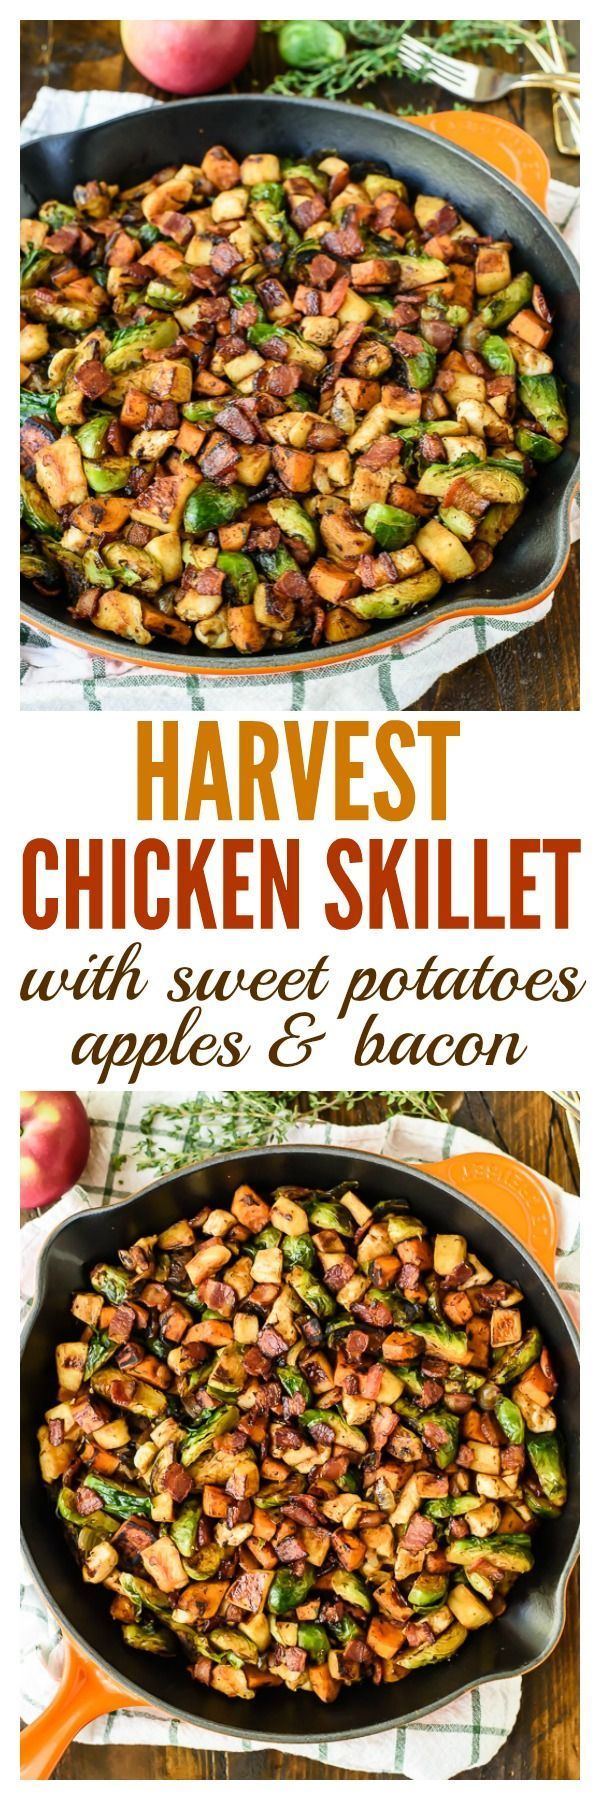 Harvest Chicken Skillet with Sweet Potatoes, Apples, Brussels Sprouts and Bacon - really good